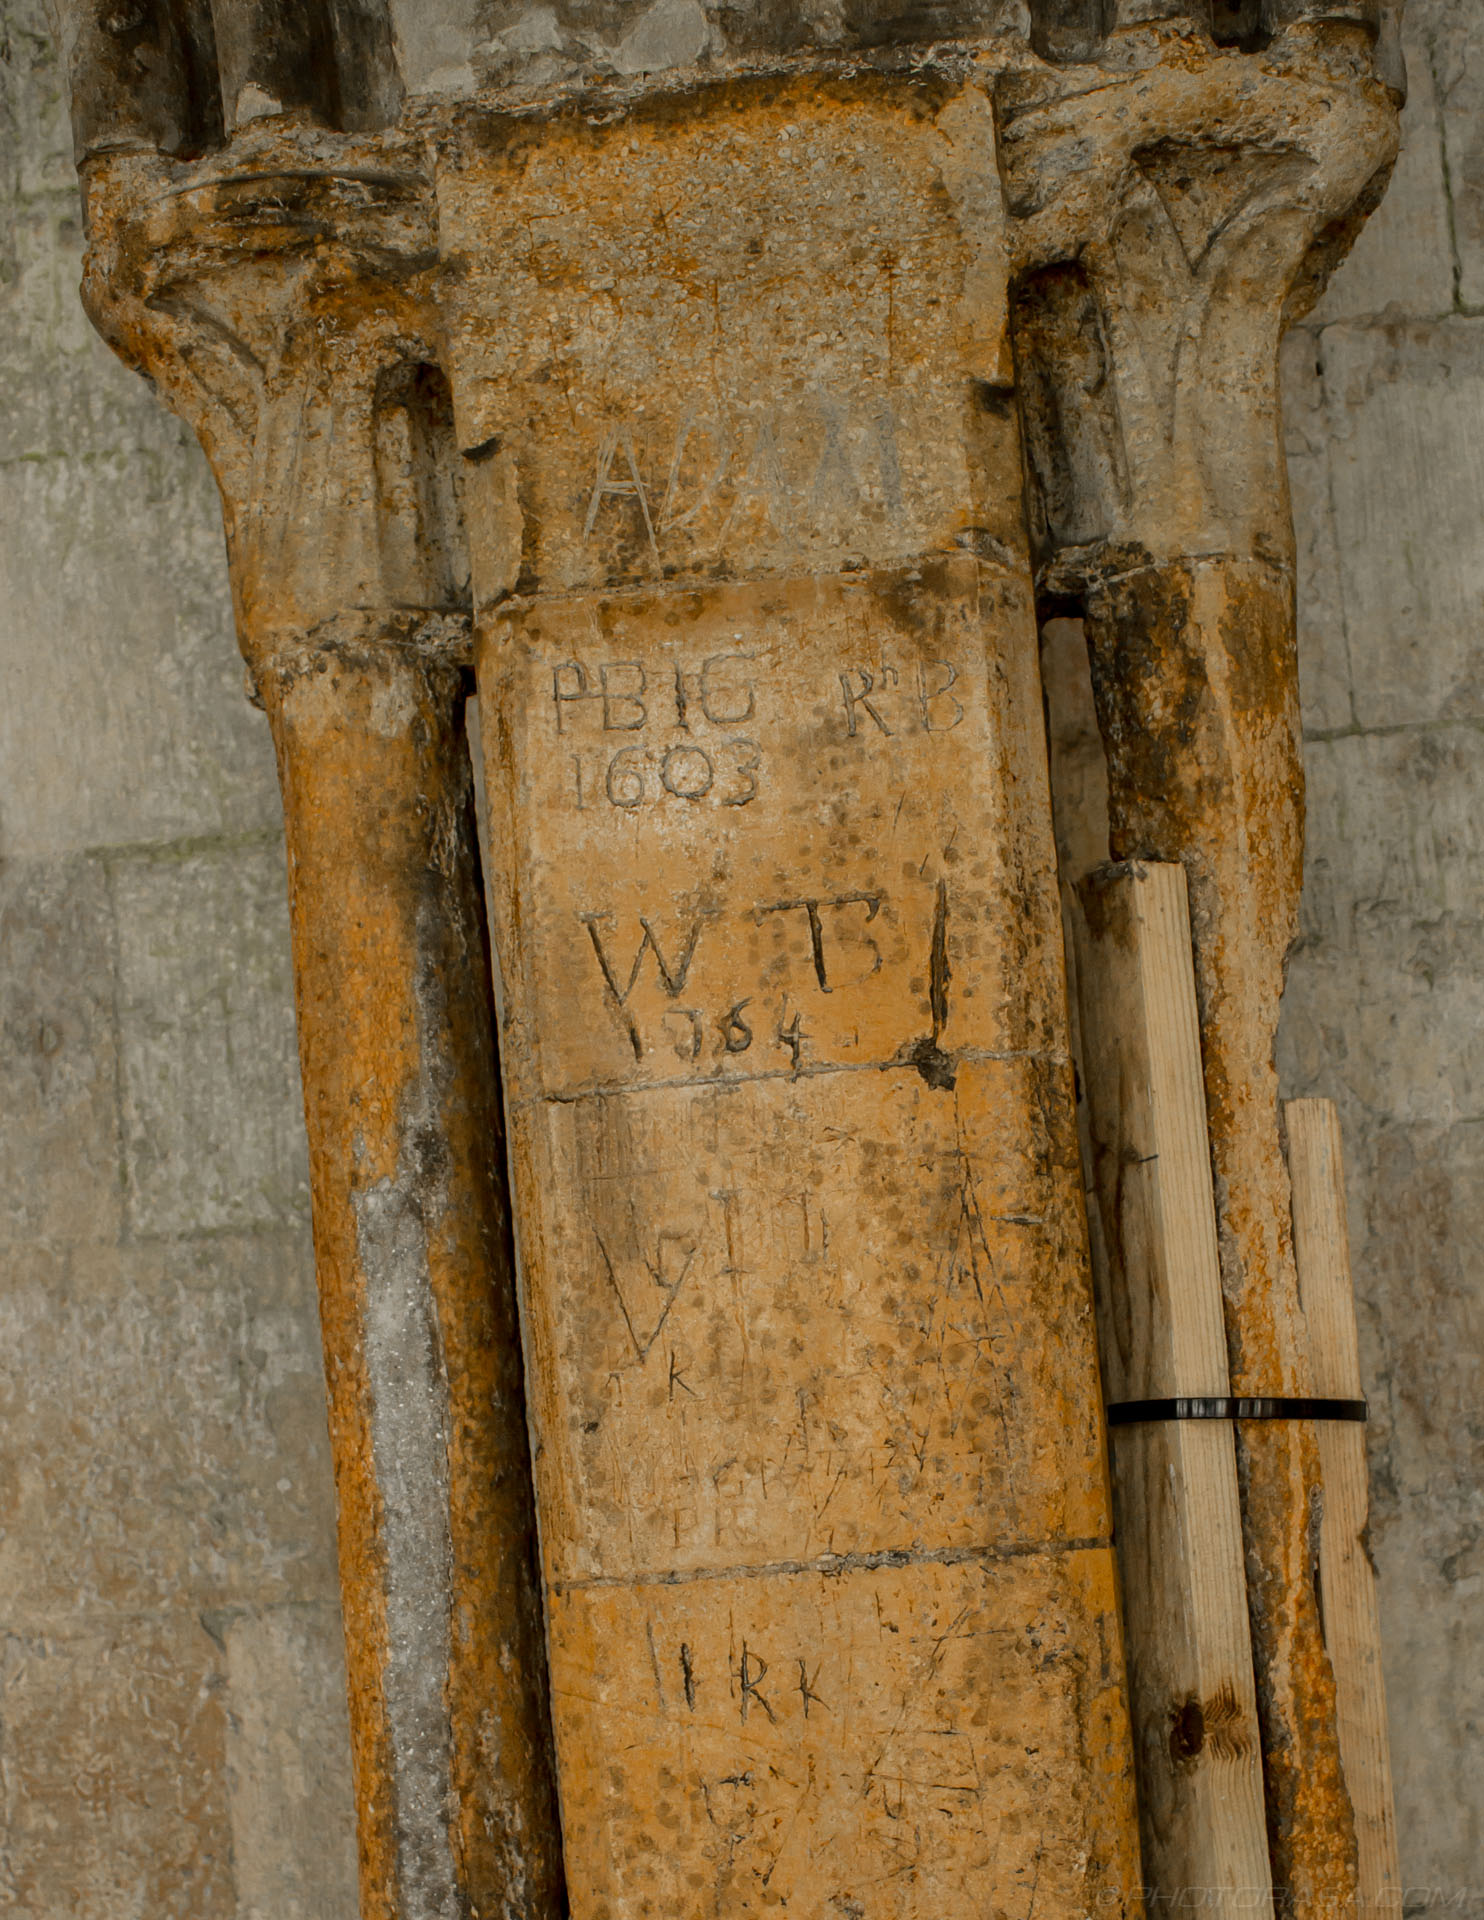 http://photorasa.com/places/cathedrals/canterbury-cathedral/attachment/old-church-grafitti/